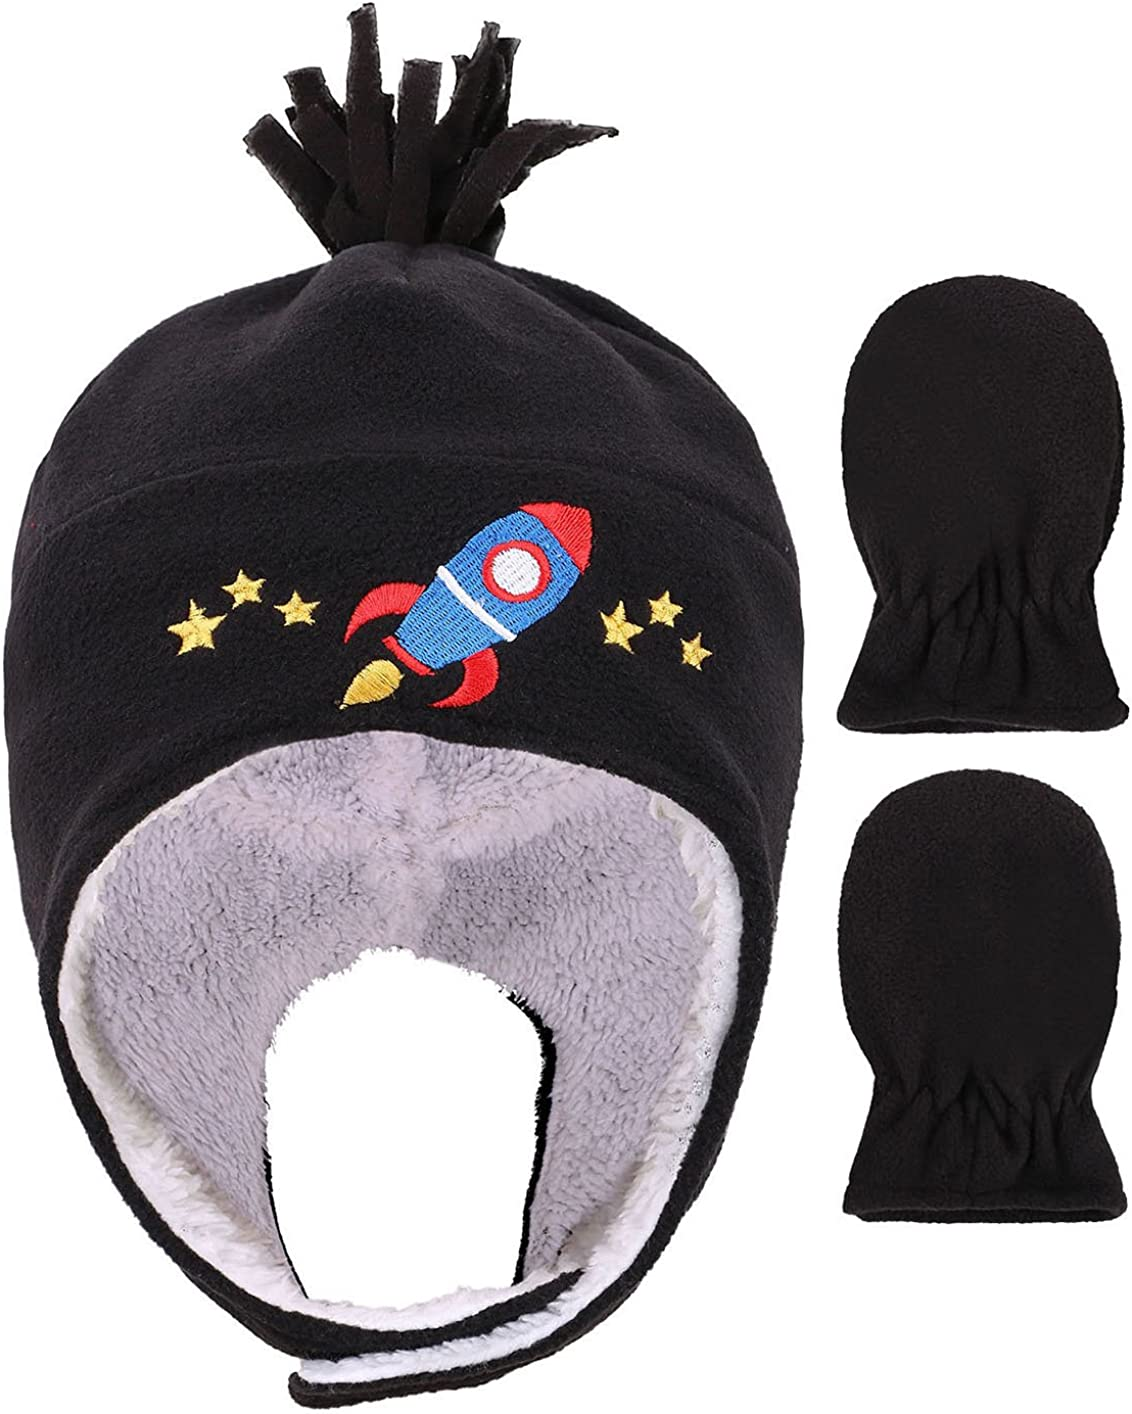 Kids Baby Toddlers Sherpa Lined Cartoon Embroidered Patterned Hat Mitten Set